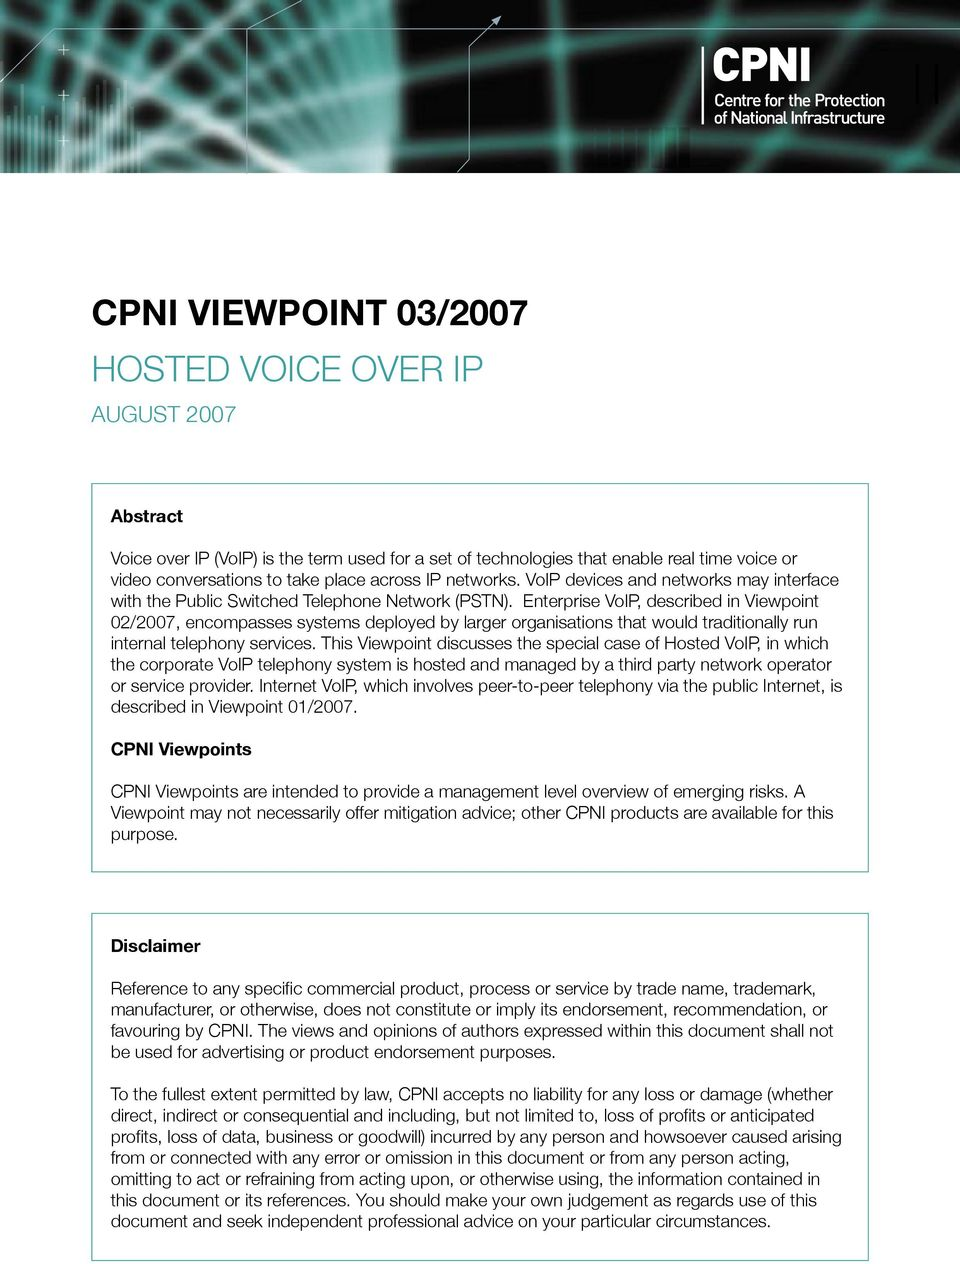 Enterprise VoIP, described in Viewpoint 02/2007, encompasses systems deployed by larger organisations that would traditionally run internal telephony services.